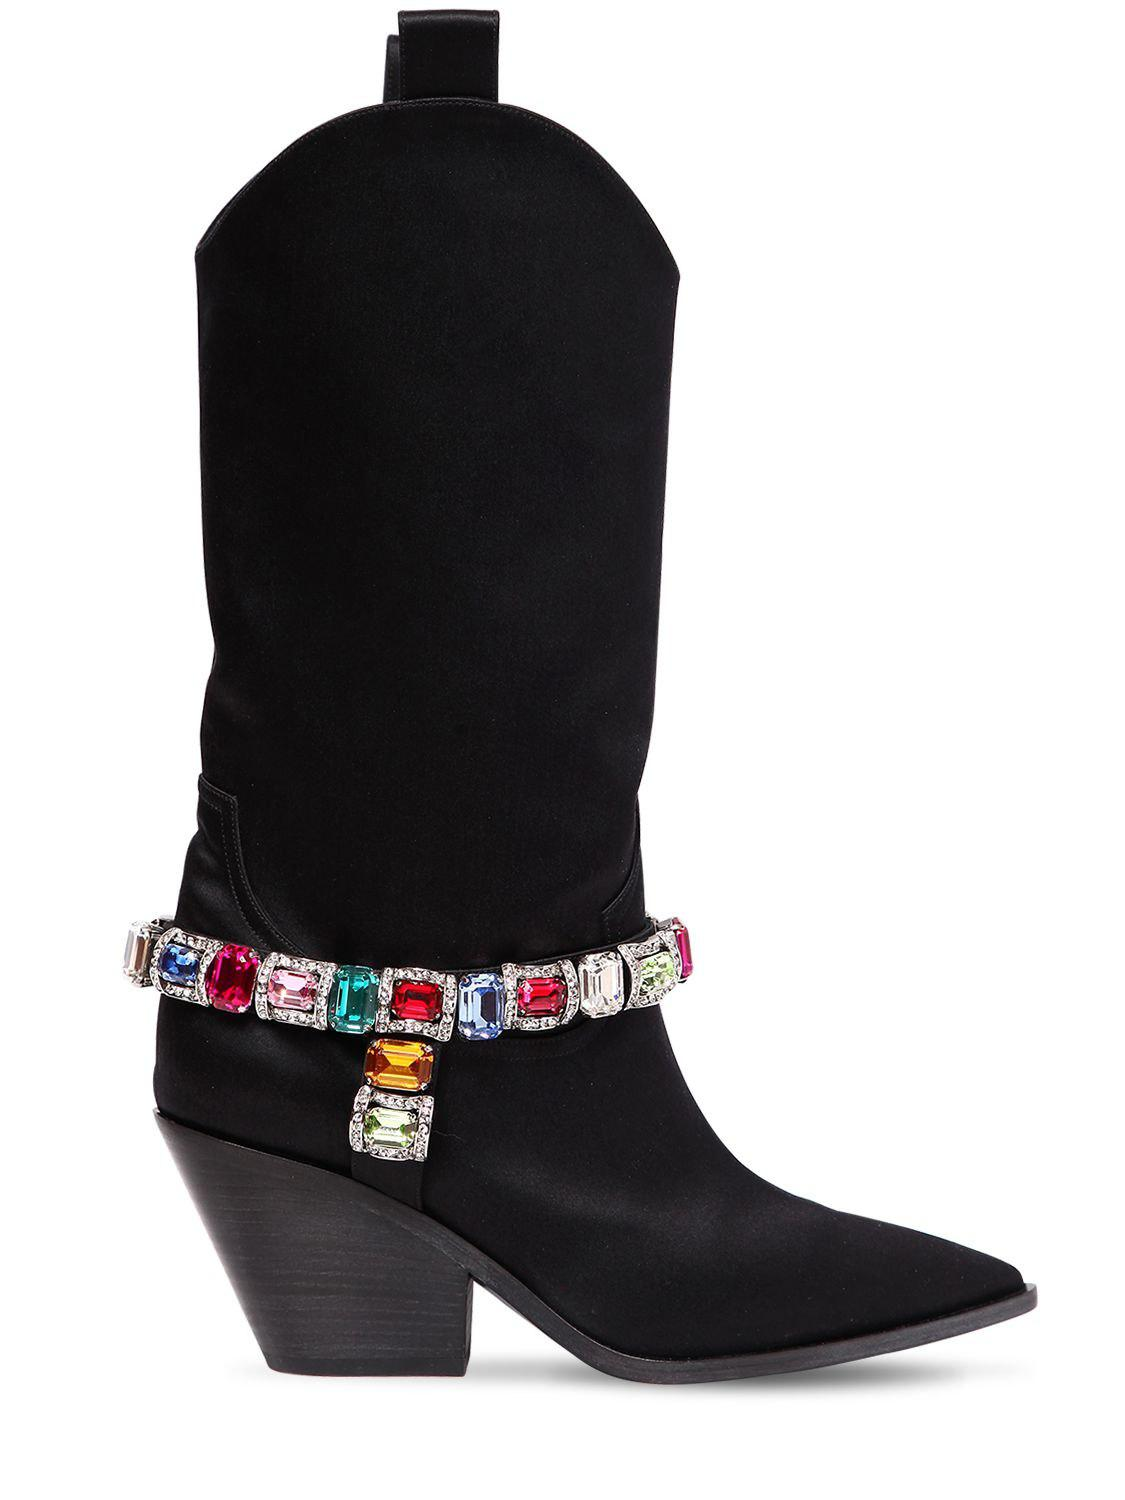 Lyst - Casadei 60mm Rodeo Crystals Satin Cowboy Boots in Black ... 93e591d36aa